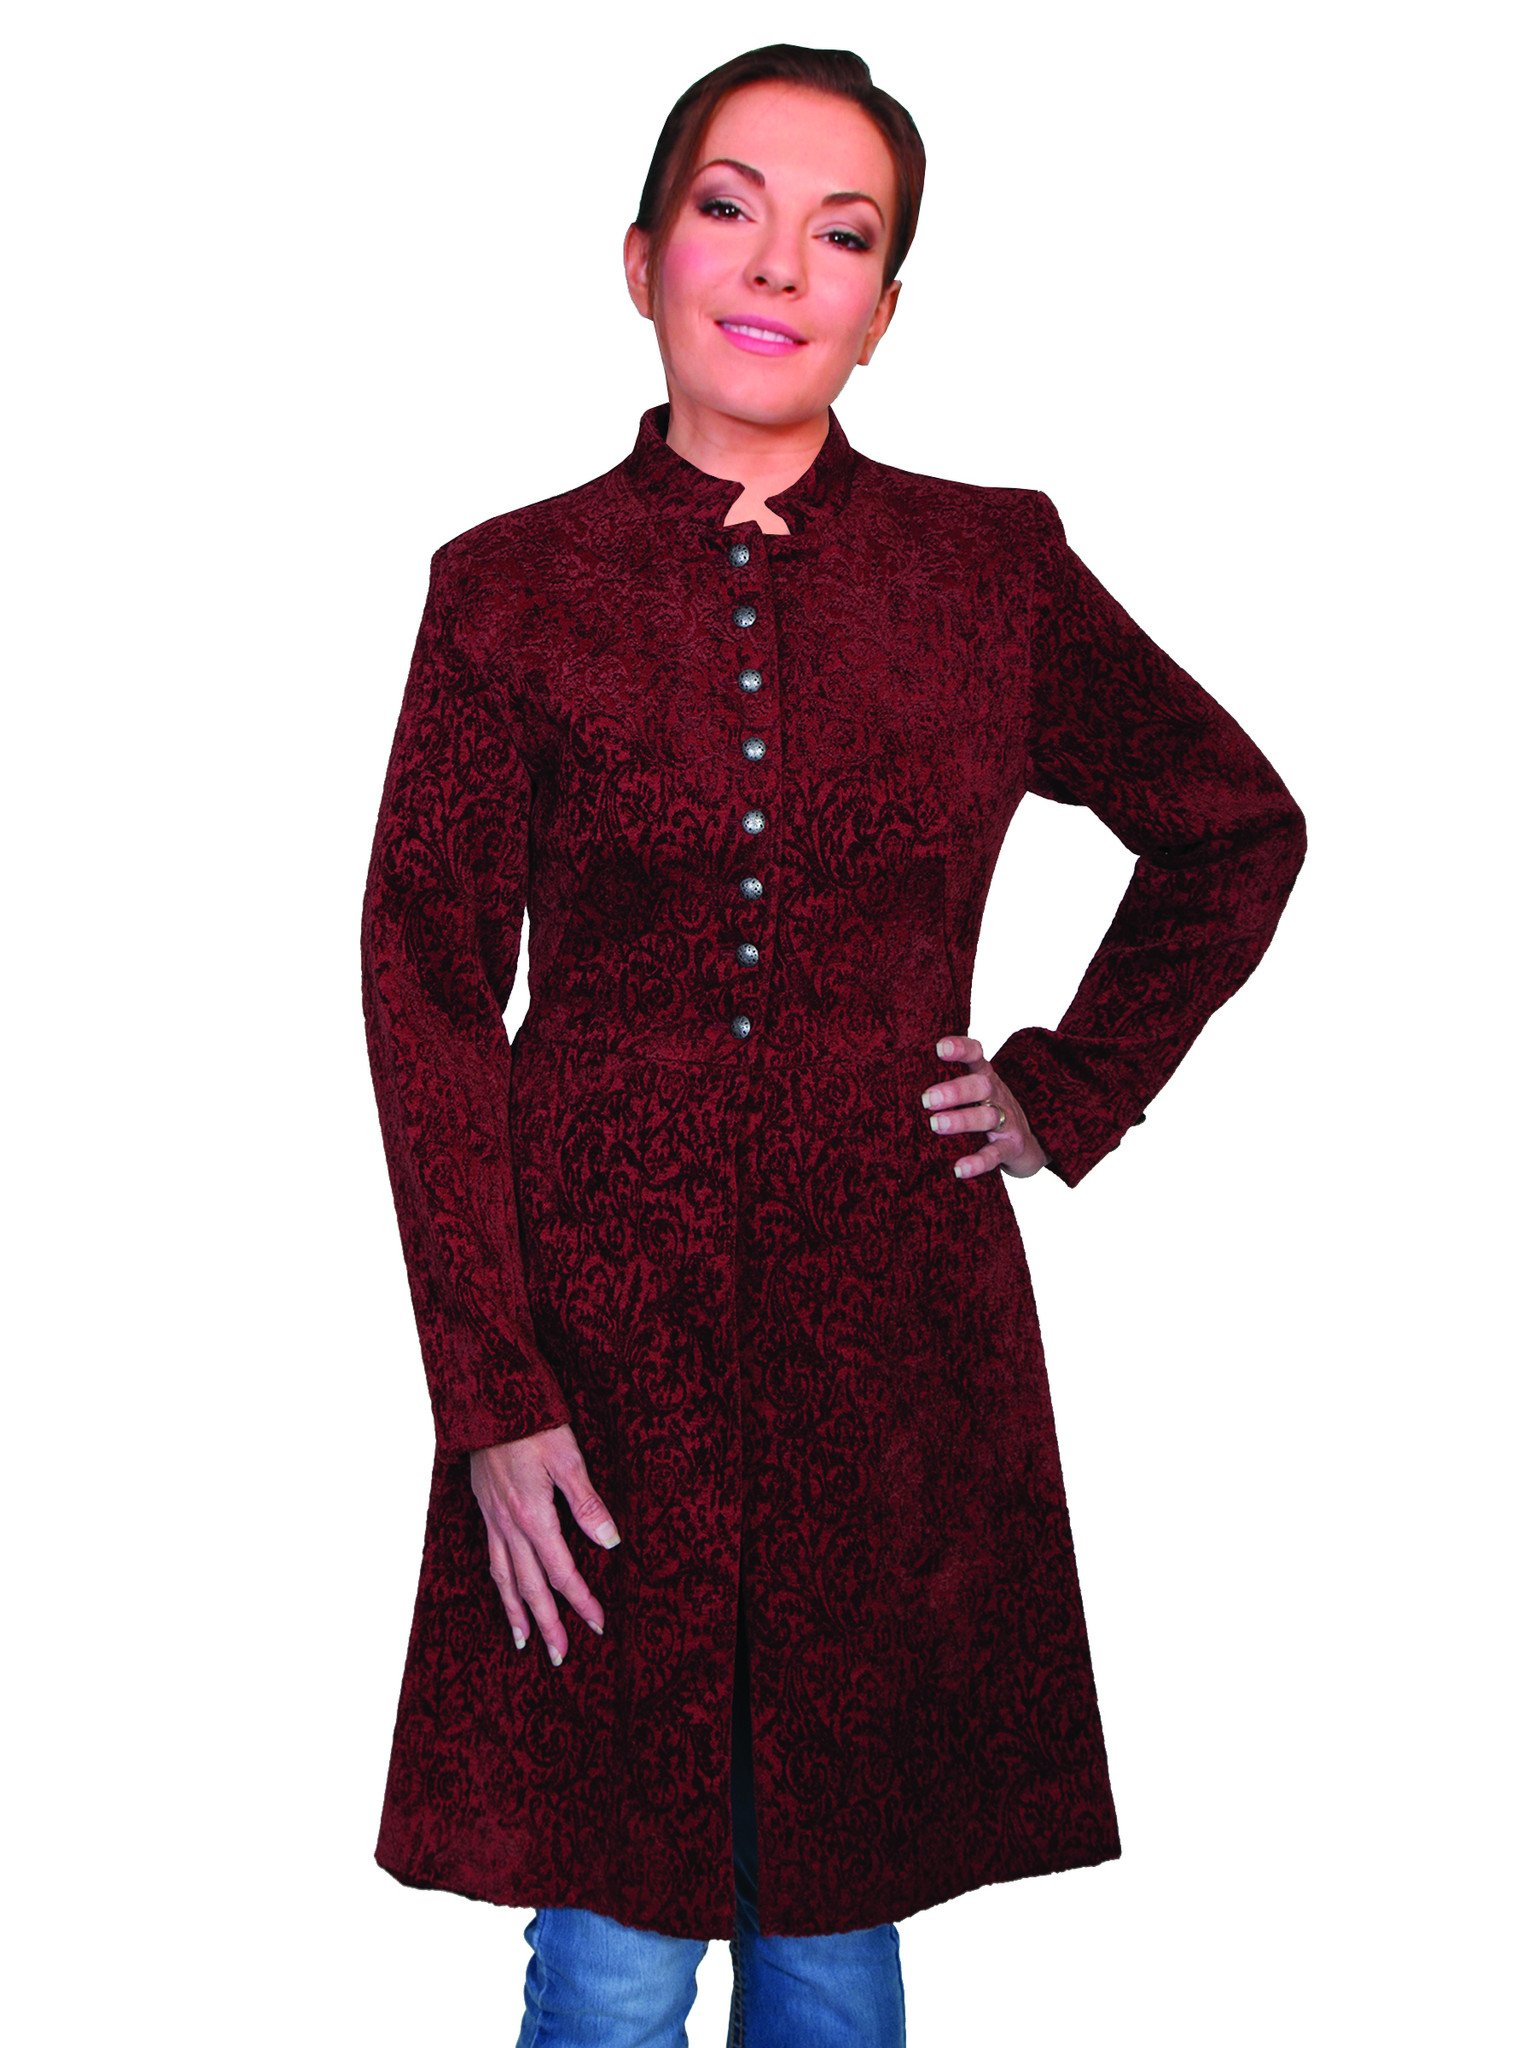 Ladies Frock coat scully ladies wahmaker old west vintage frock coat chenille wine ... RVZJMGY